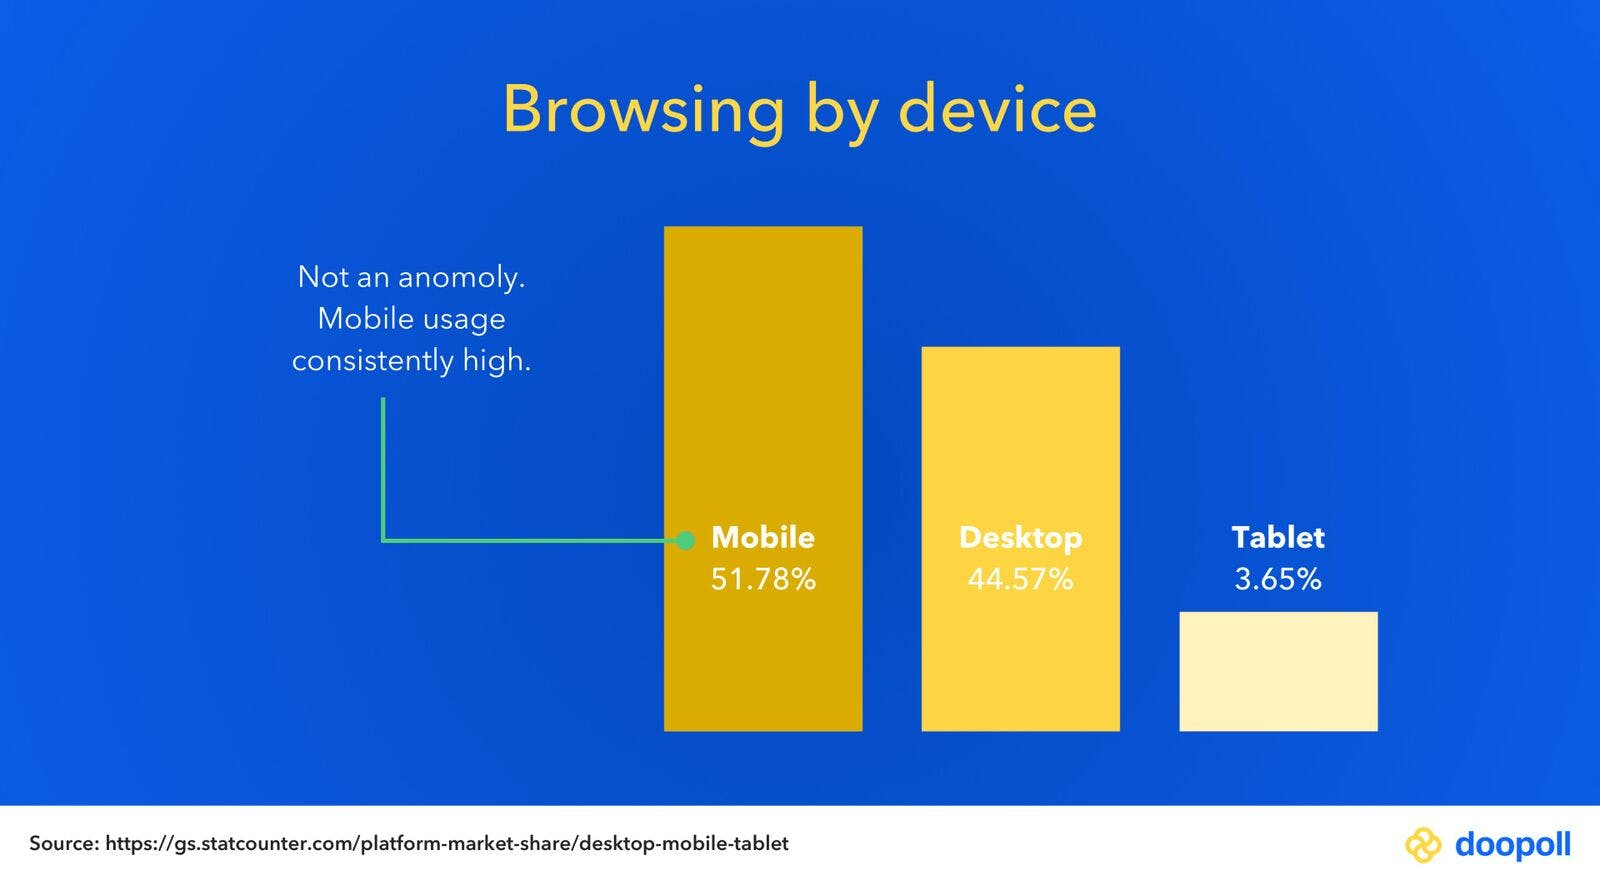 51.78% of browsing happens on a mobile